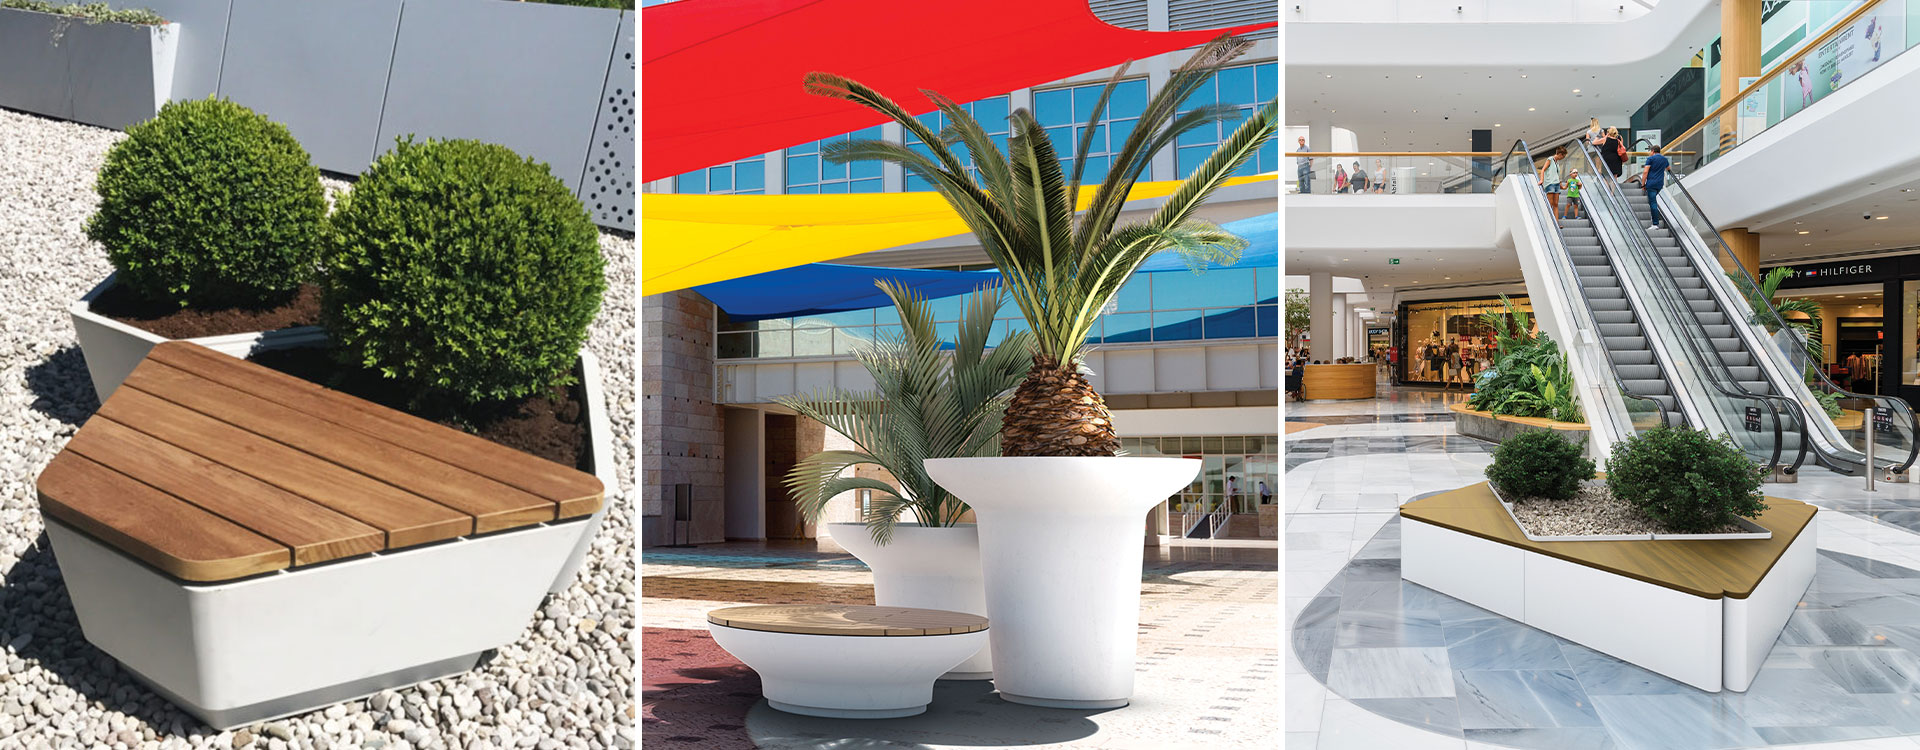 Create Unified landscapes with our 2 in 1 Planter/Seating Range